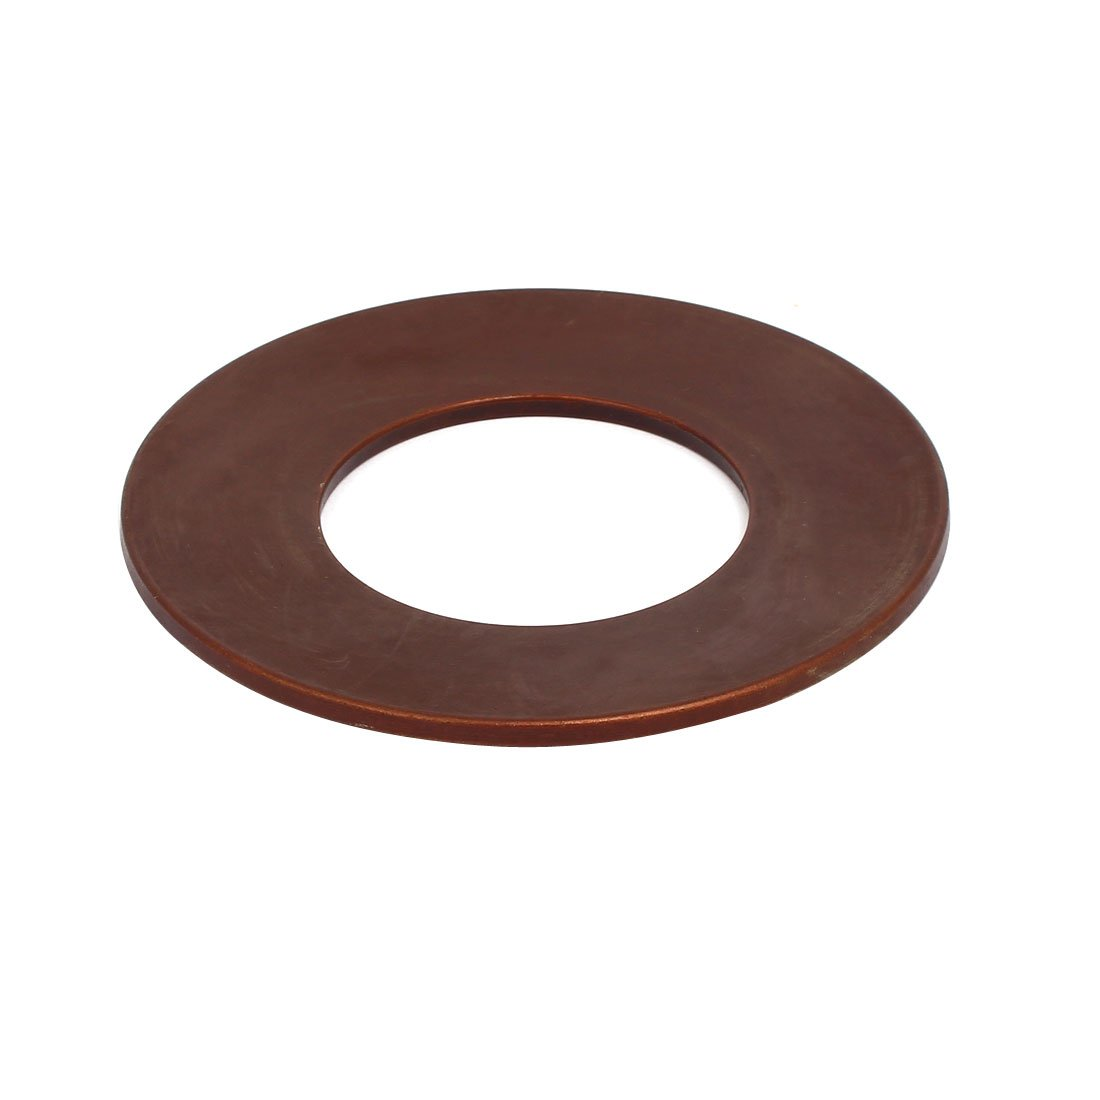 uxcell 140mm Outer Dia 72mm Inner Diameter 5mm Thickness Belleville Spring Washer